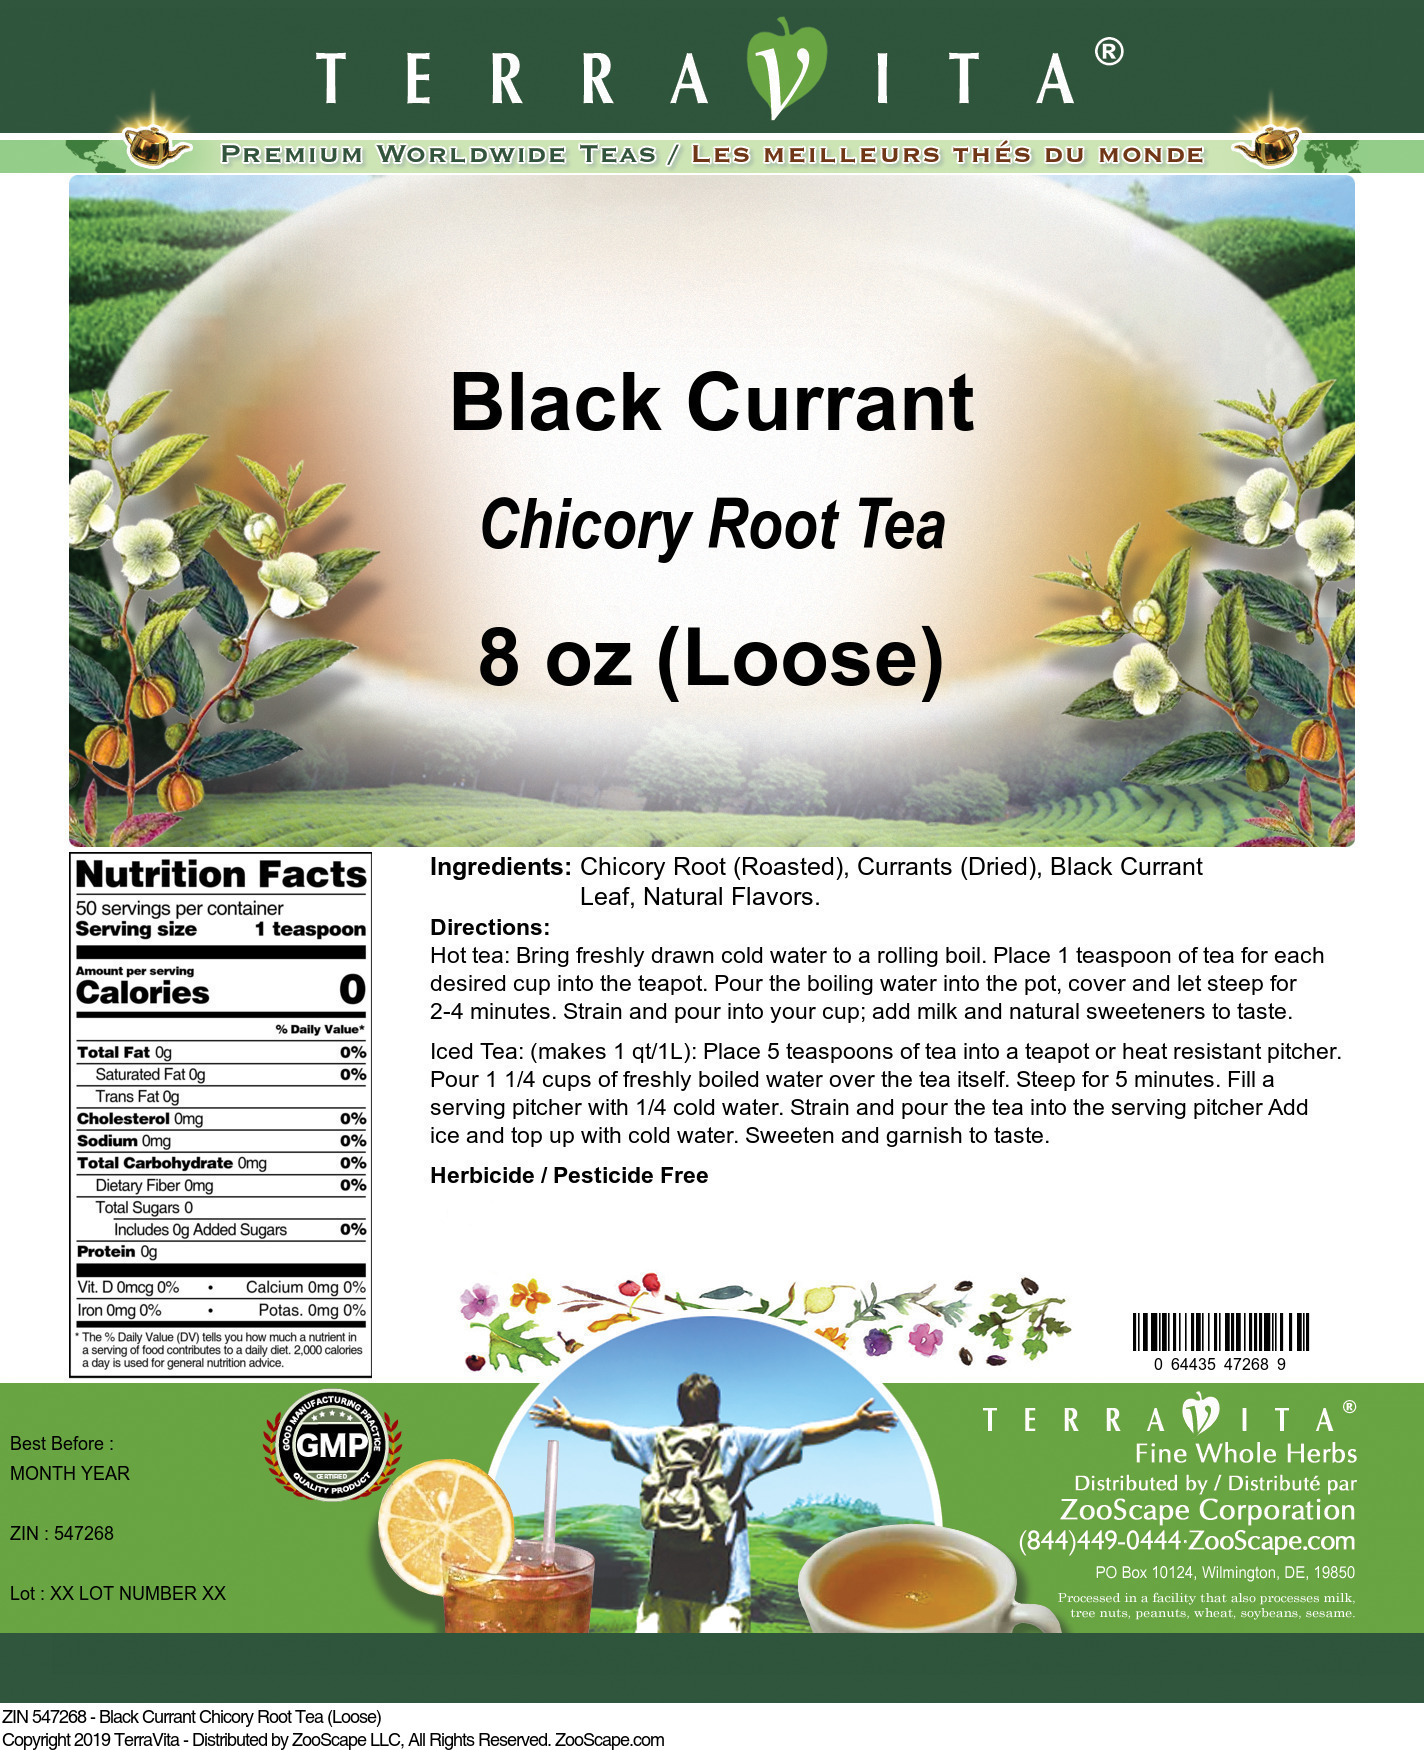 Black Currant Chicory Root